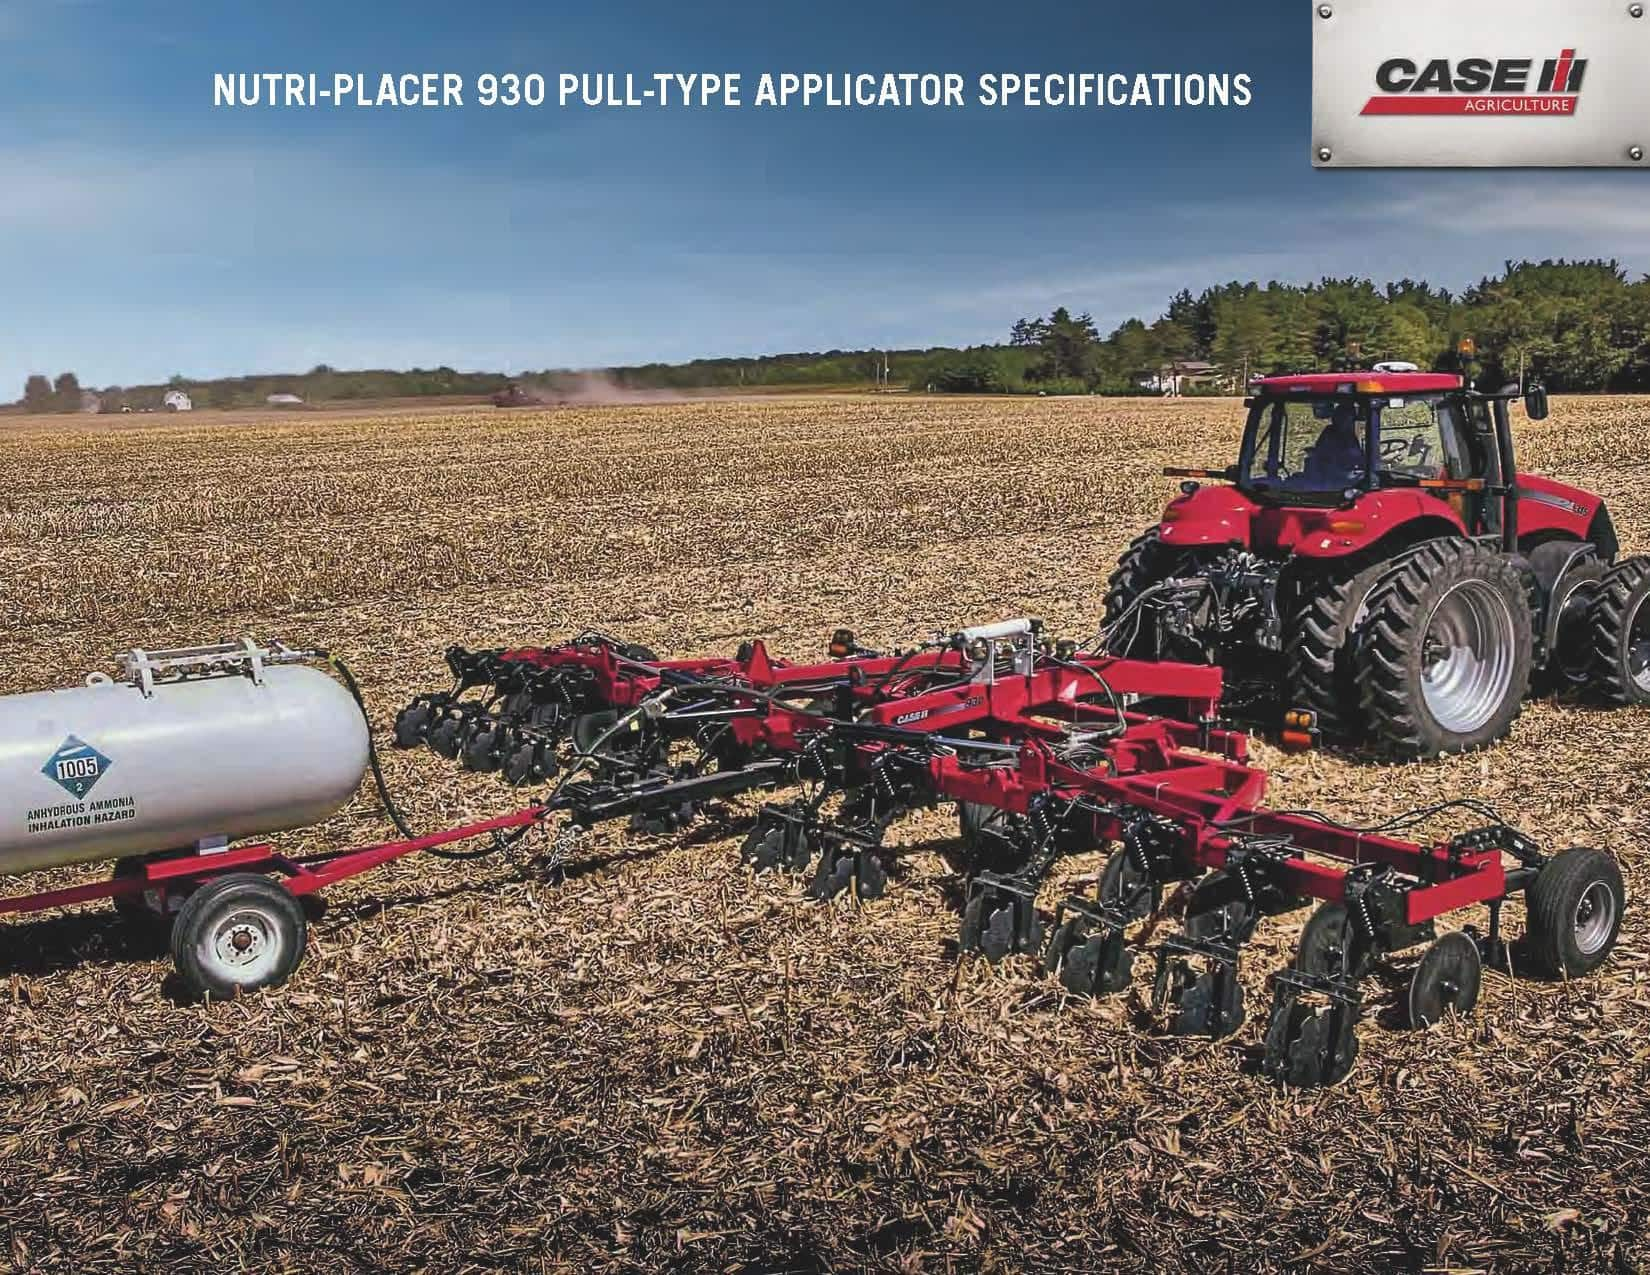 Fertilizer Applicators - Nutri-Placer 930 - SPEC